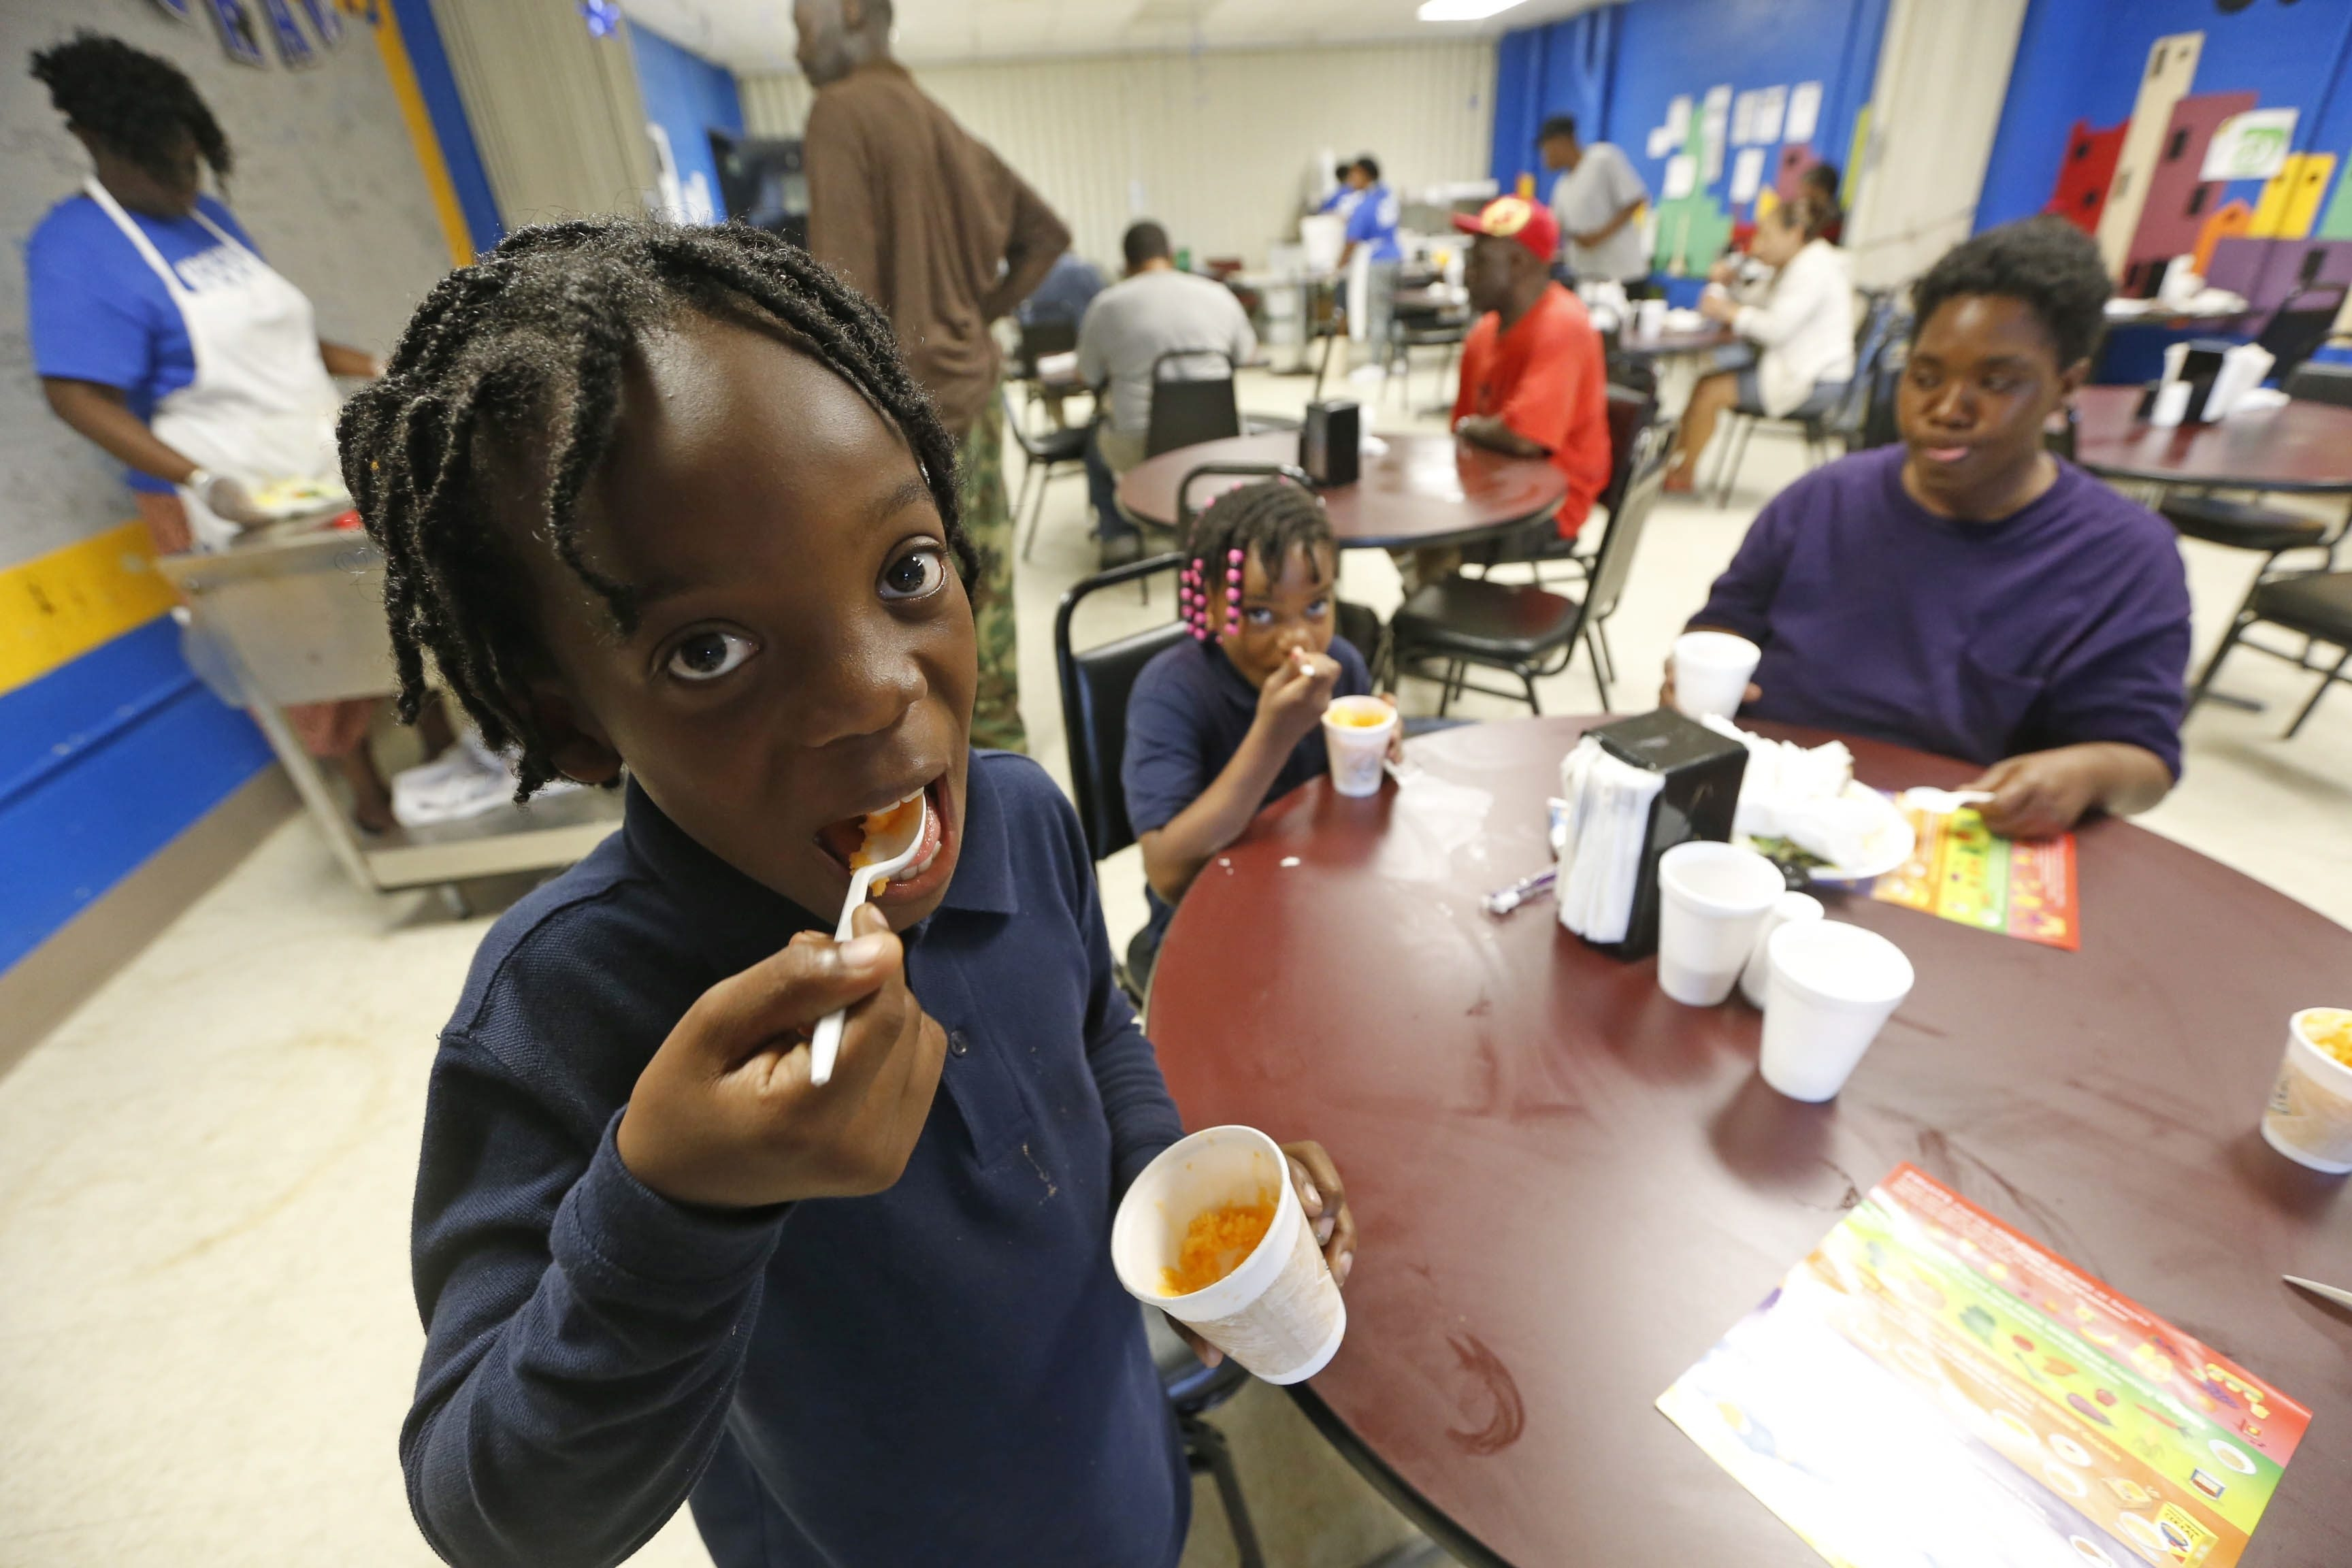 Keisha Chaney and her children Antoine Chaney, foreground, and Speshelle Ponzo, have a meal at the Lt. Col. Matt Urban Hope Center on the East Side, one of the human service agencies that helps the city cope with child poverty.